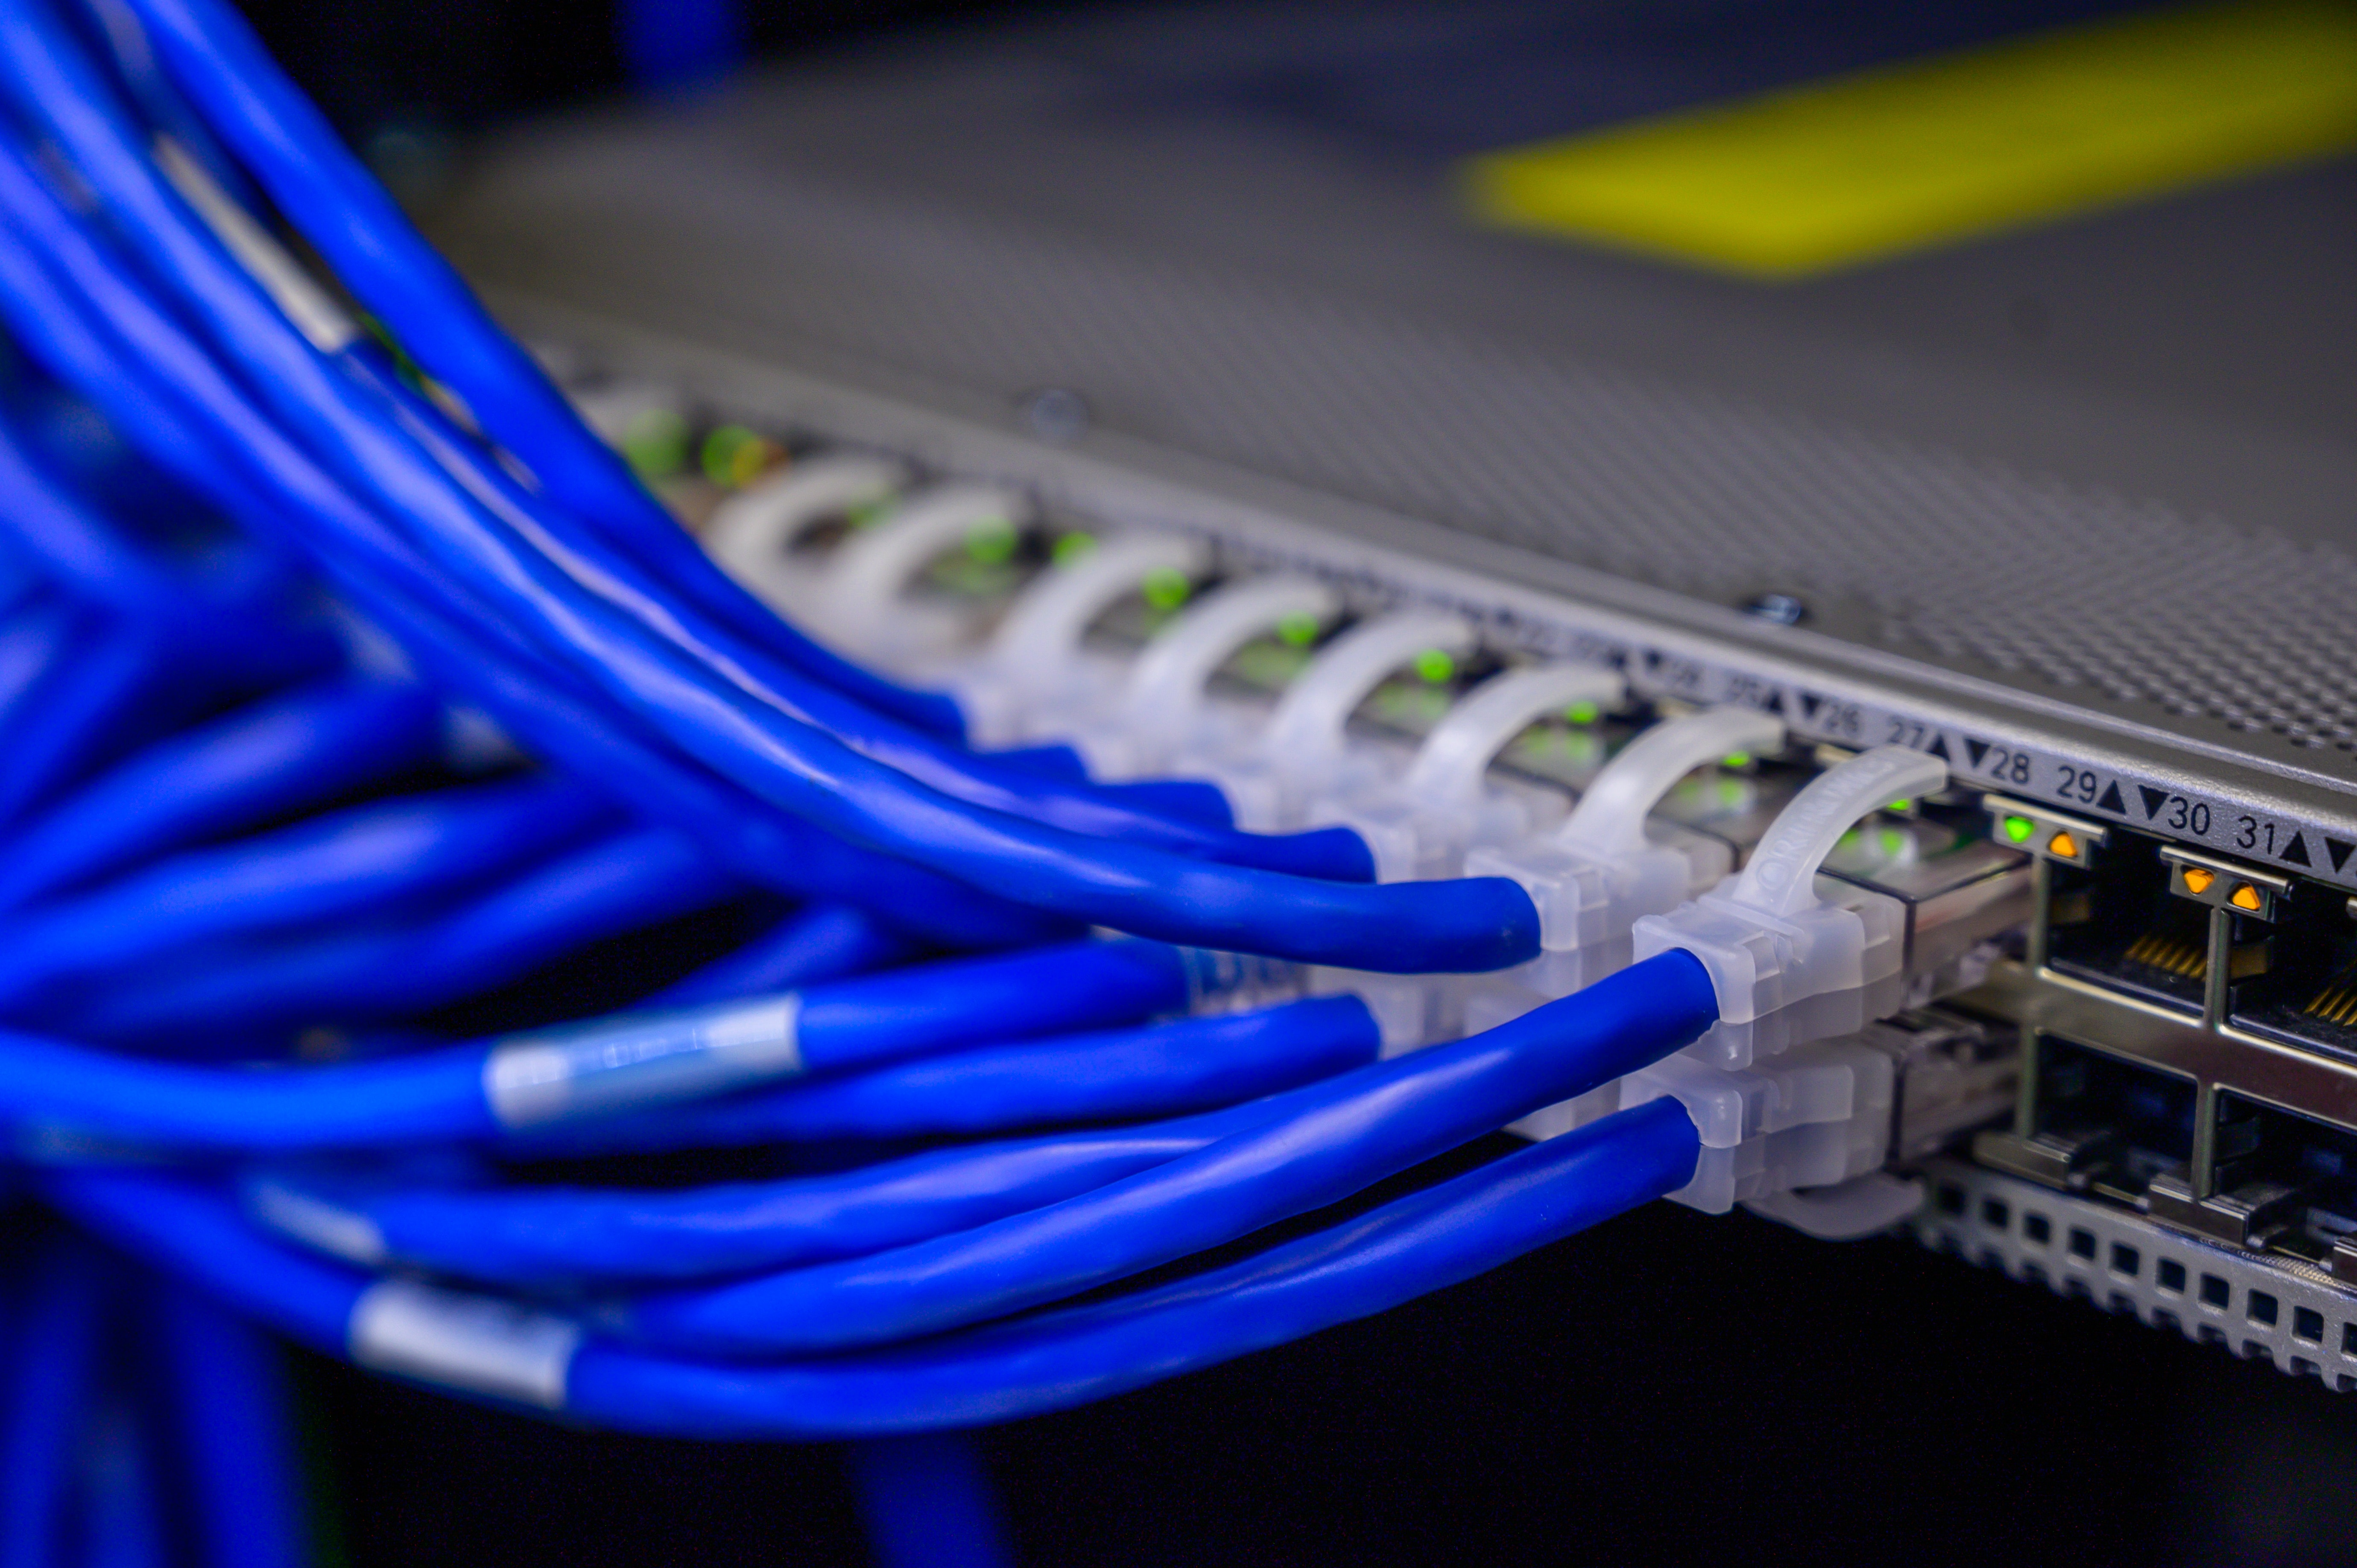 ethernet-cable-connected-to-a-compartment-port-2881232